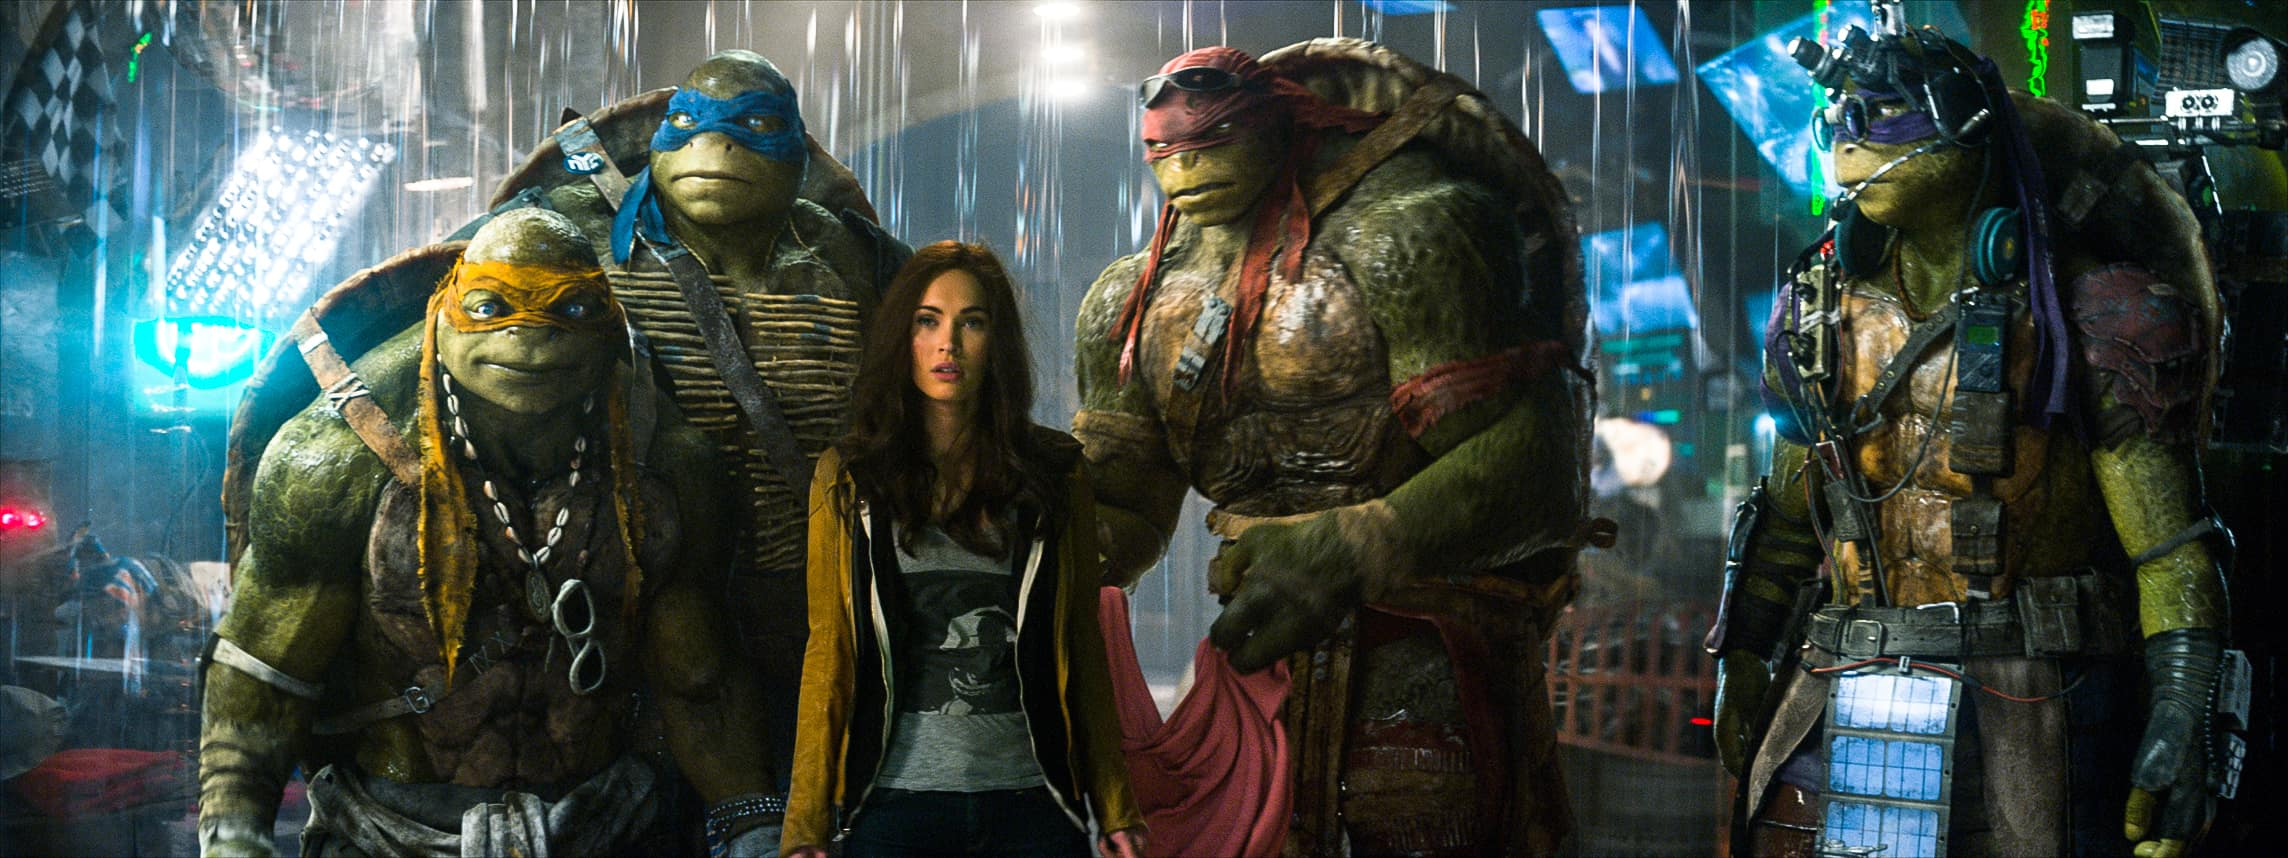 Megan Fox wishes Singapore on it's National Day, and other TMNT featurettes